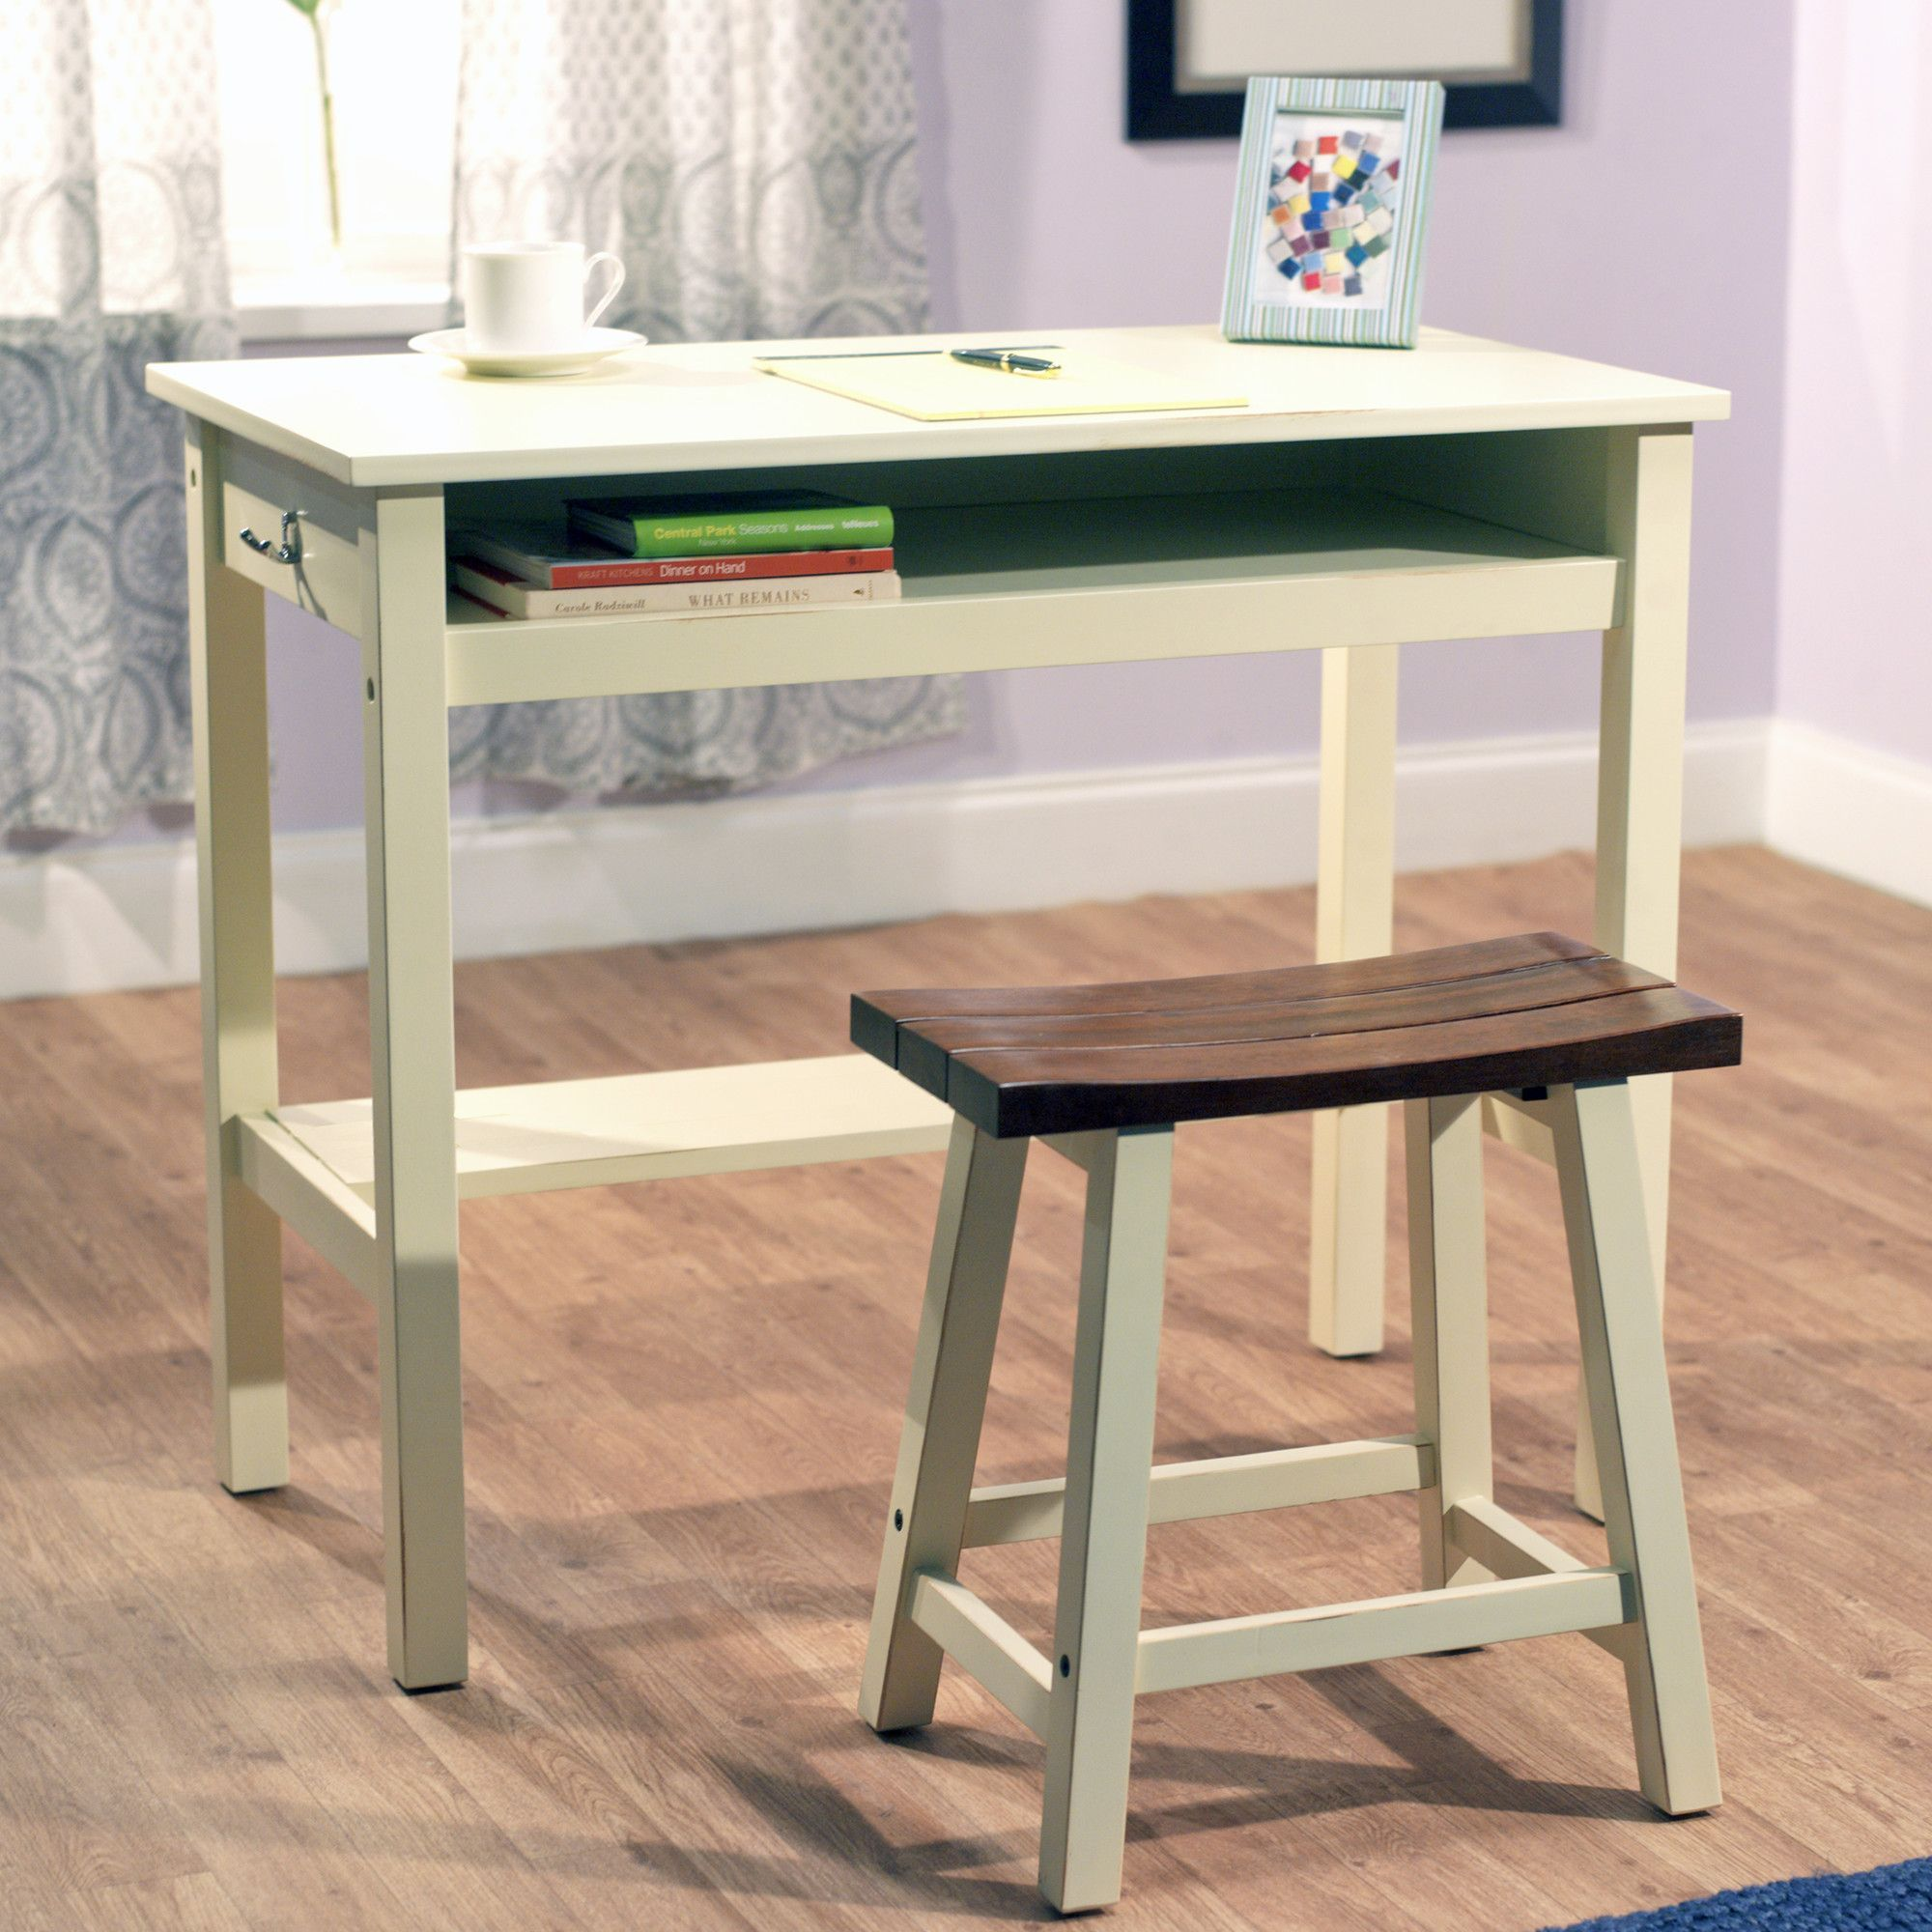 Miraculous Madison Study Writing Desk Chair Set Desk Supplies Gmtry Best Dining Table And Chair Ideas Images Gmtryco